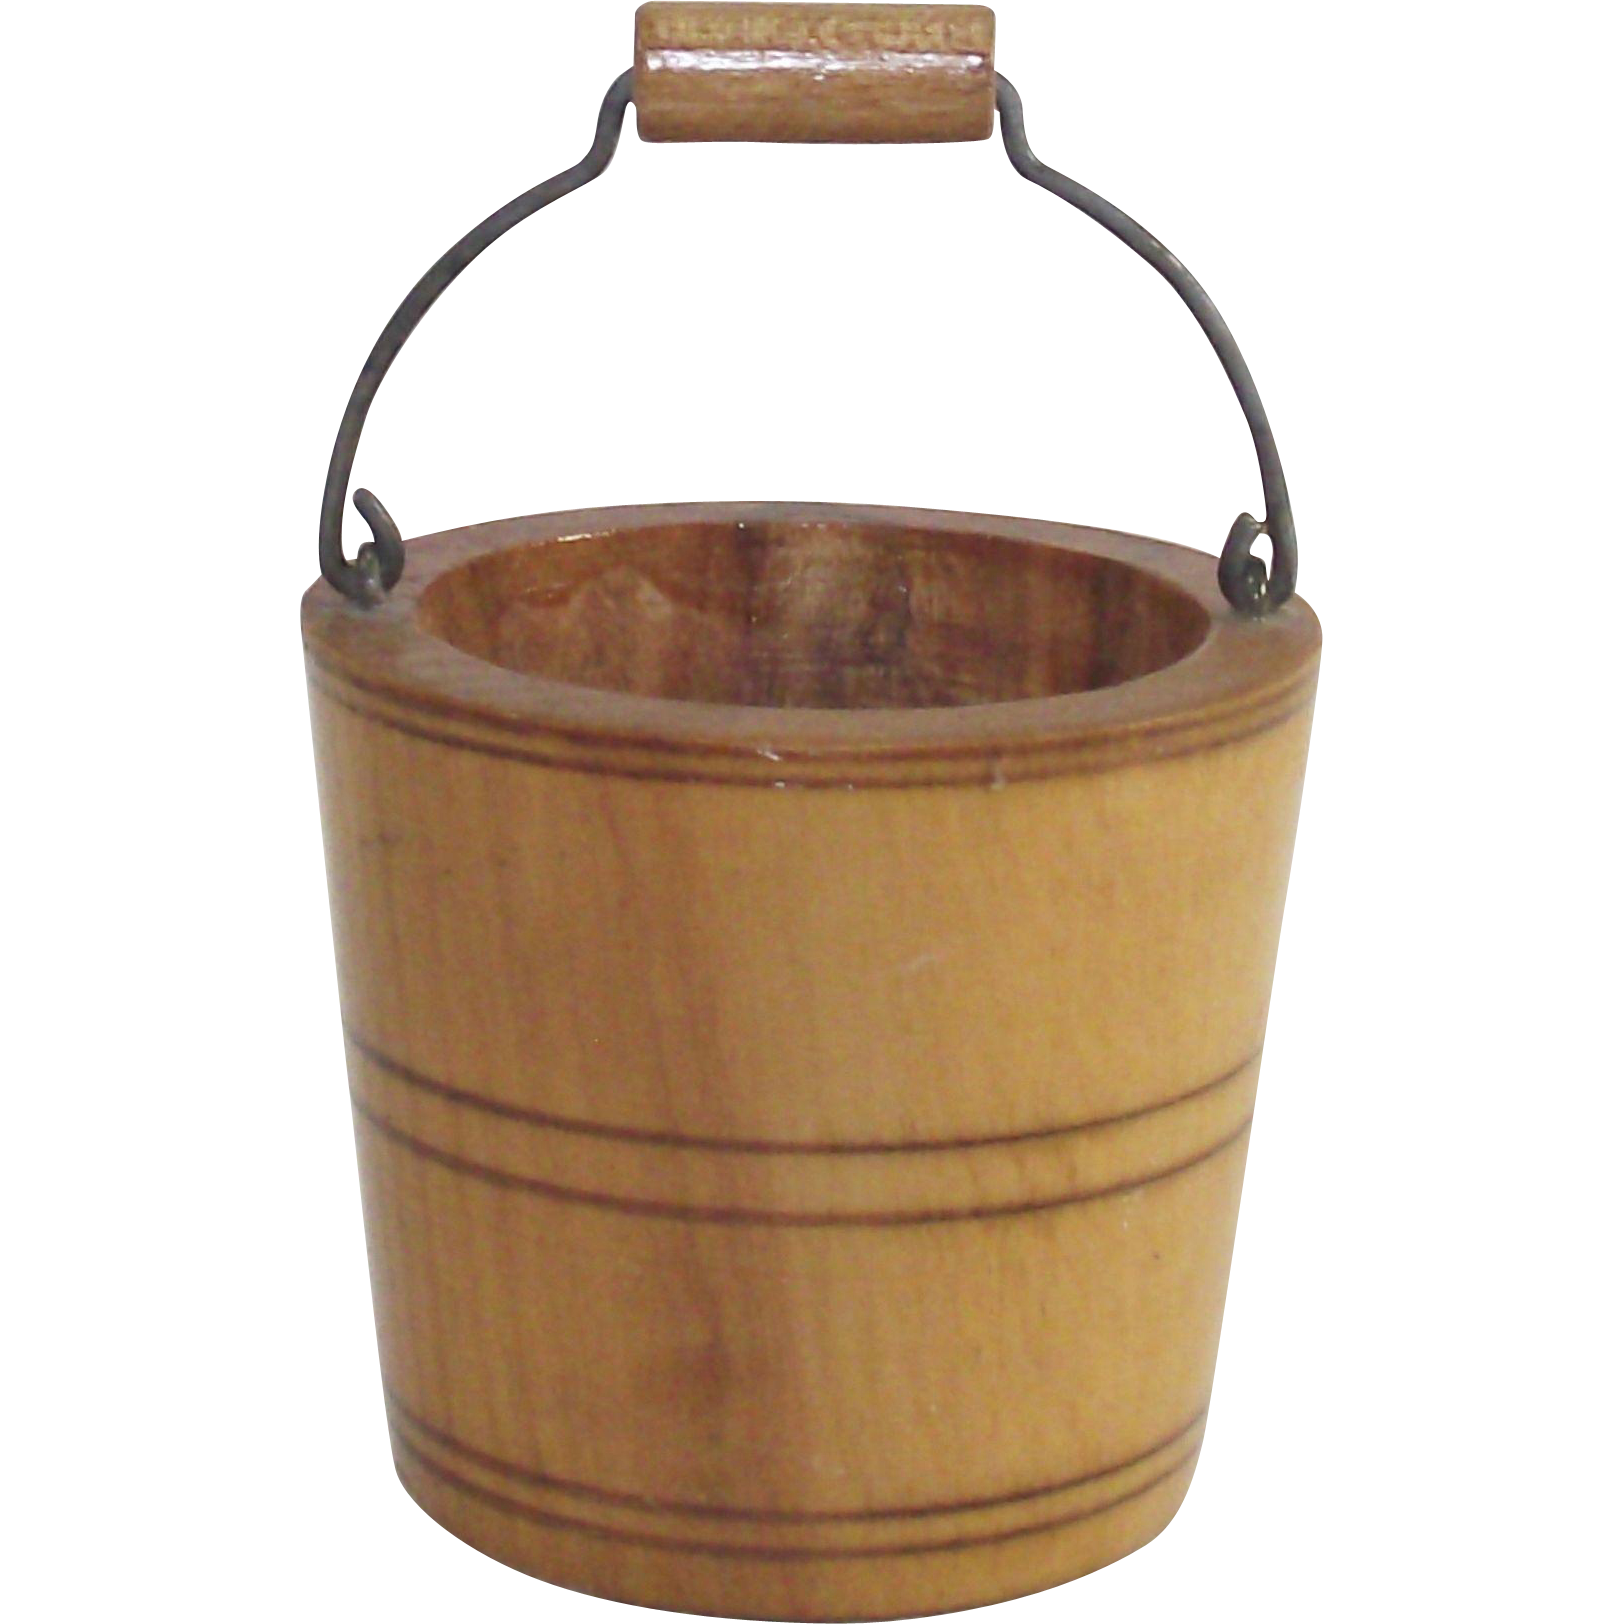 Vintage Thread Holder Wooden Bucket with Bail Handle  Hand Turned  Dated 1900